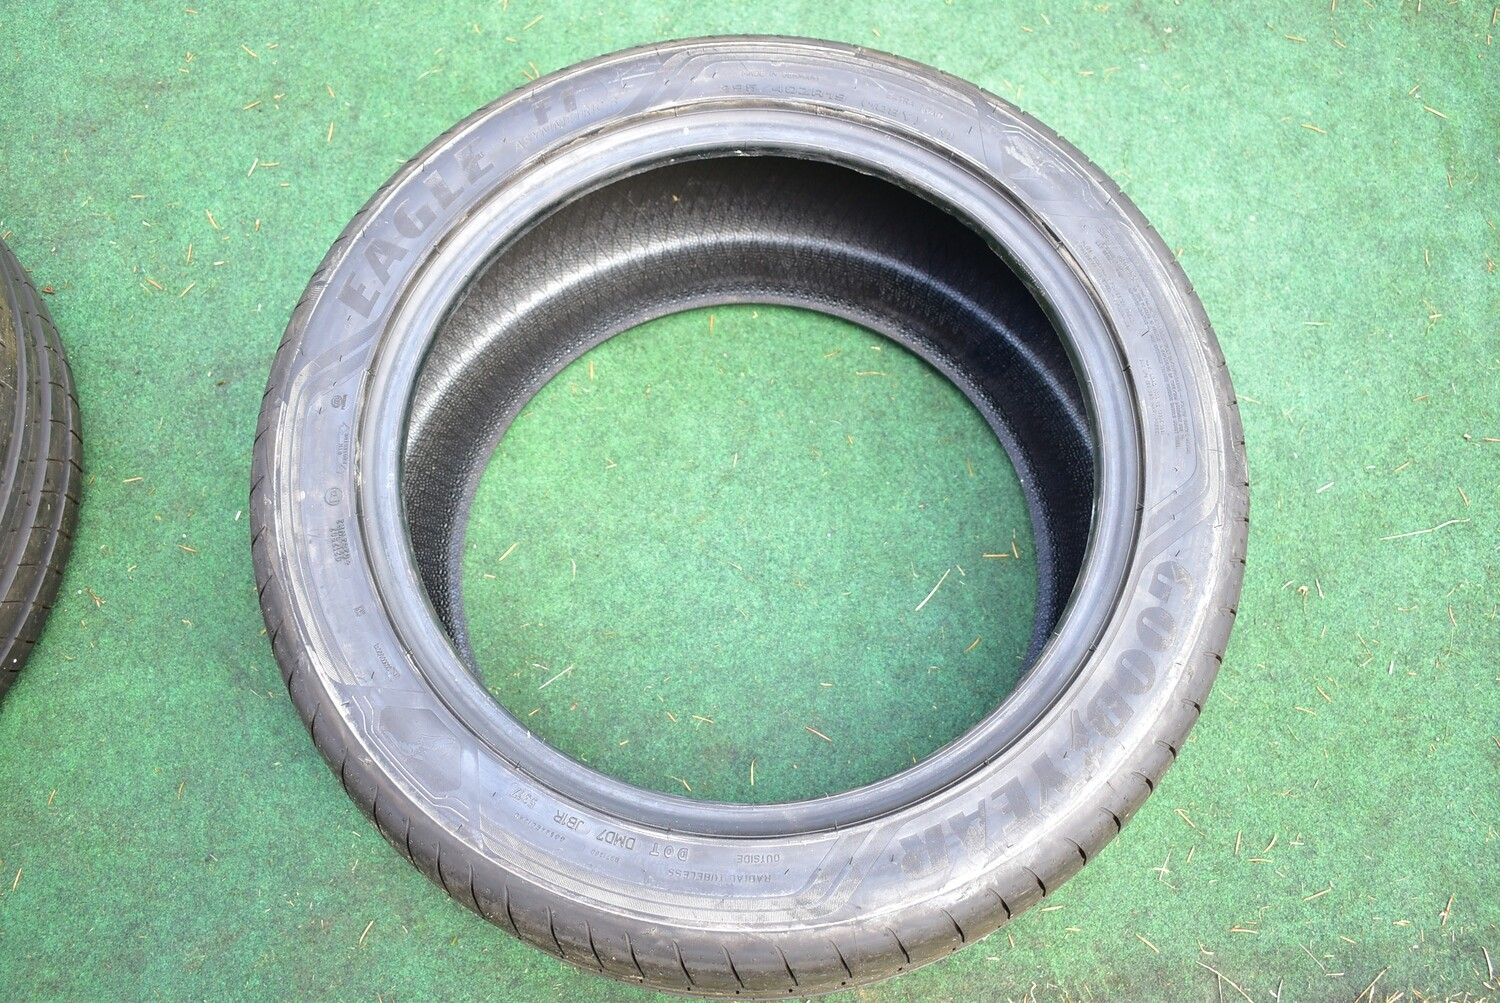 Goodyear Eagle F1 295/40ZR19 Tire new take offs less than 1000 miles